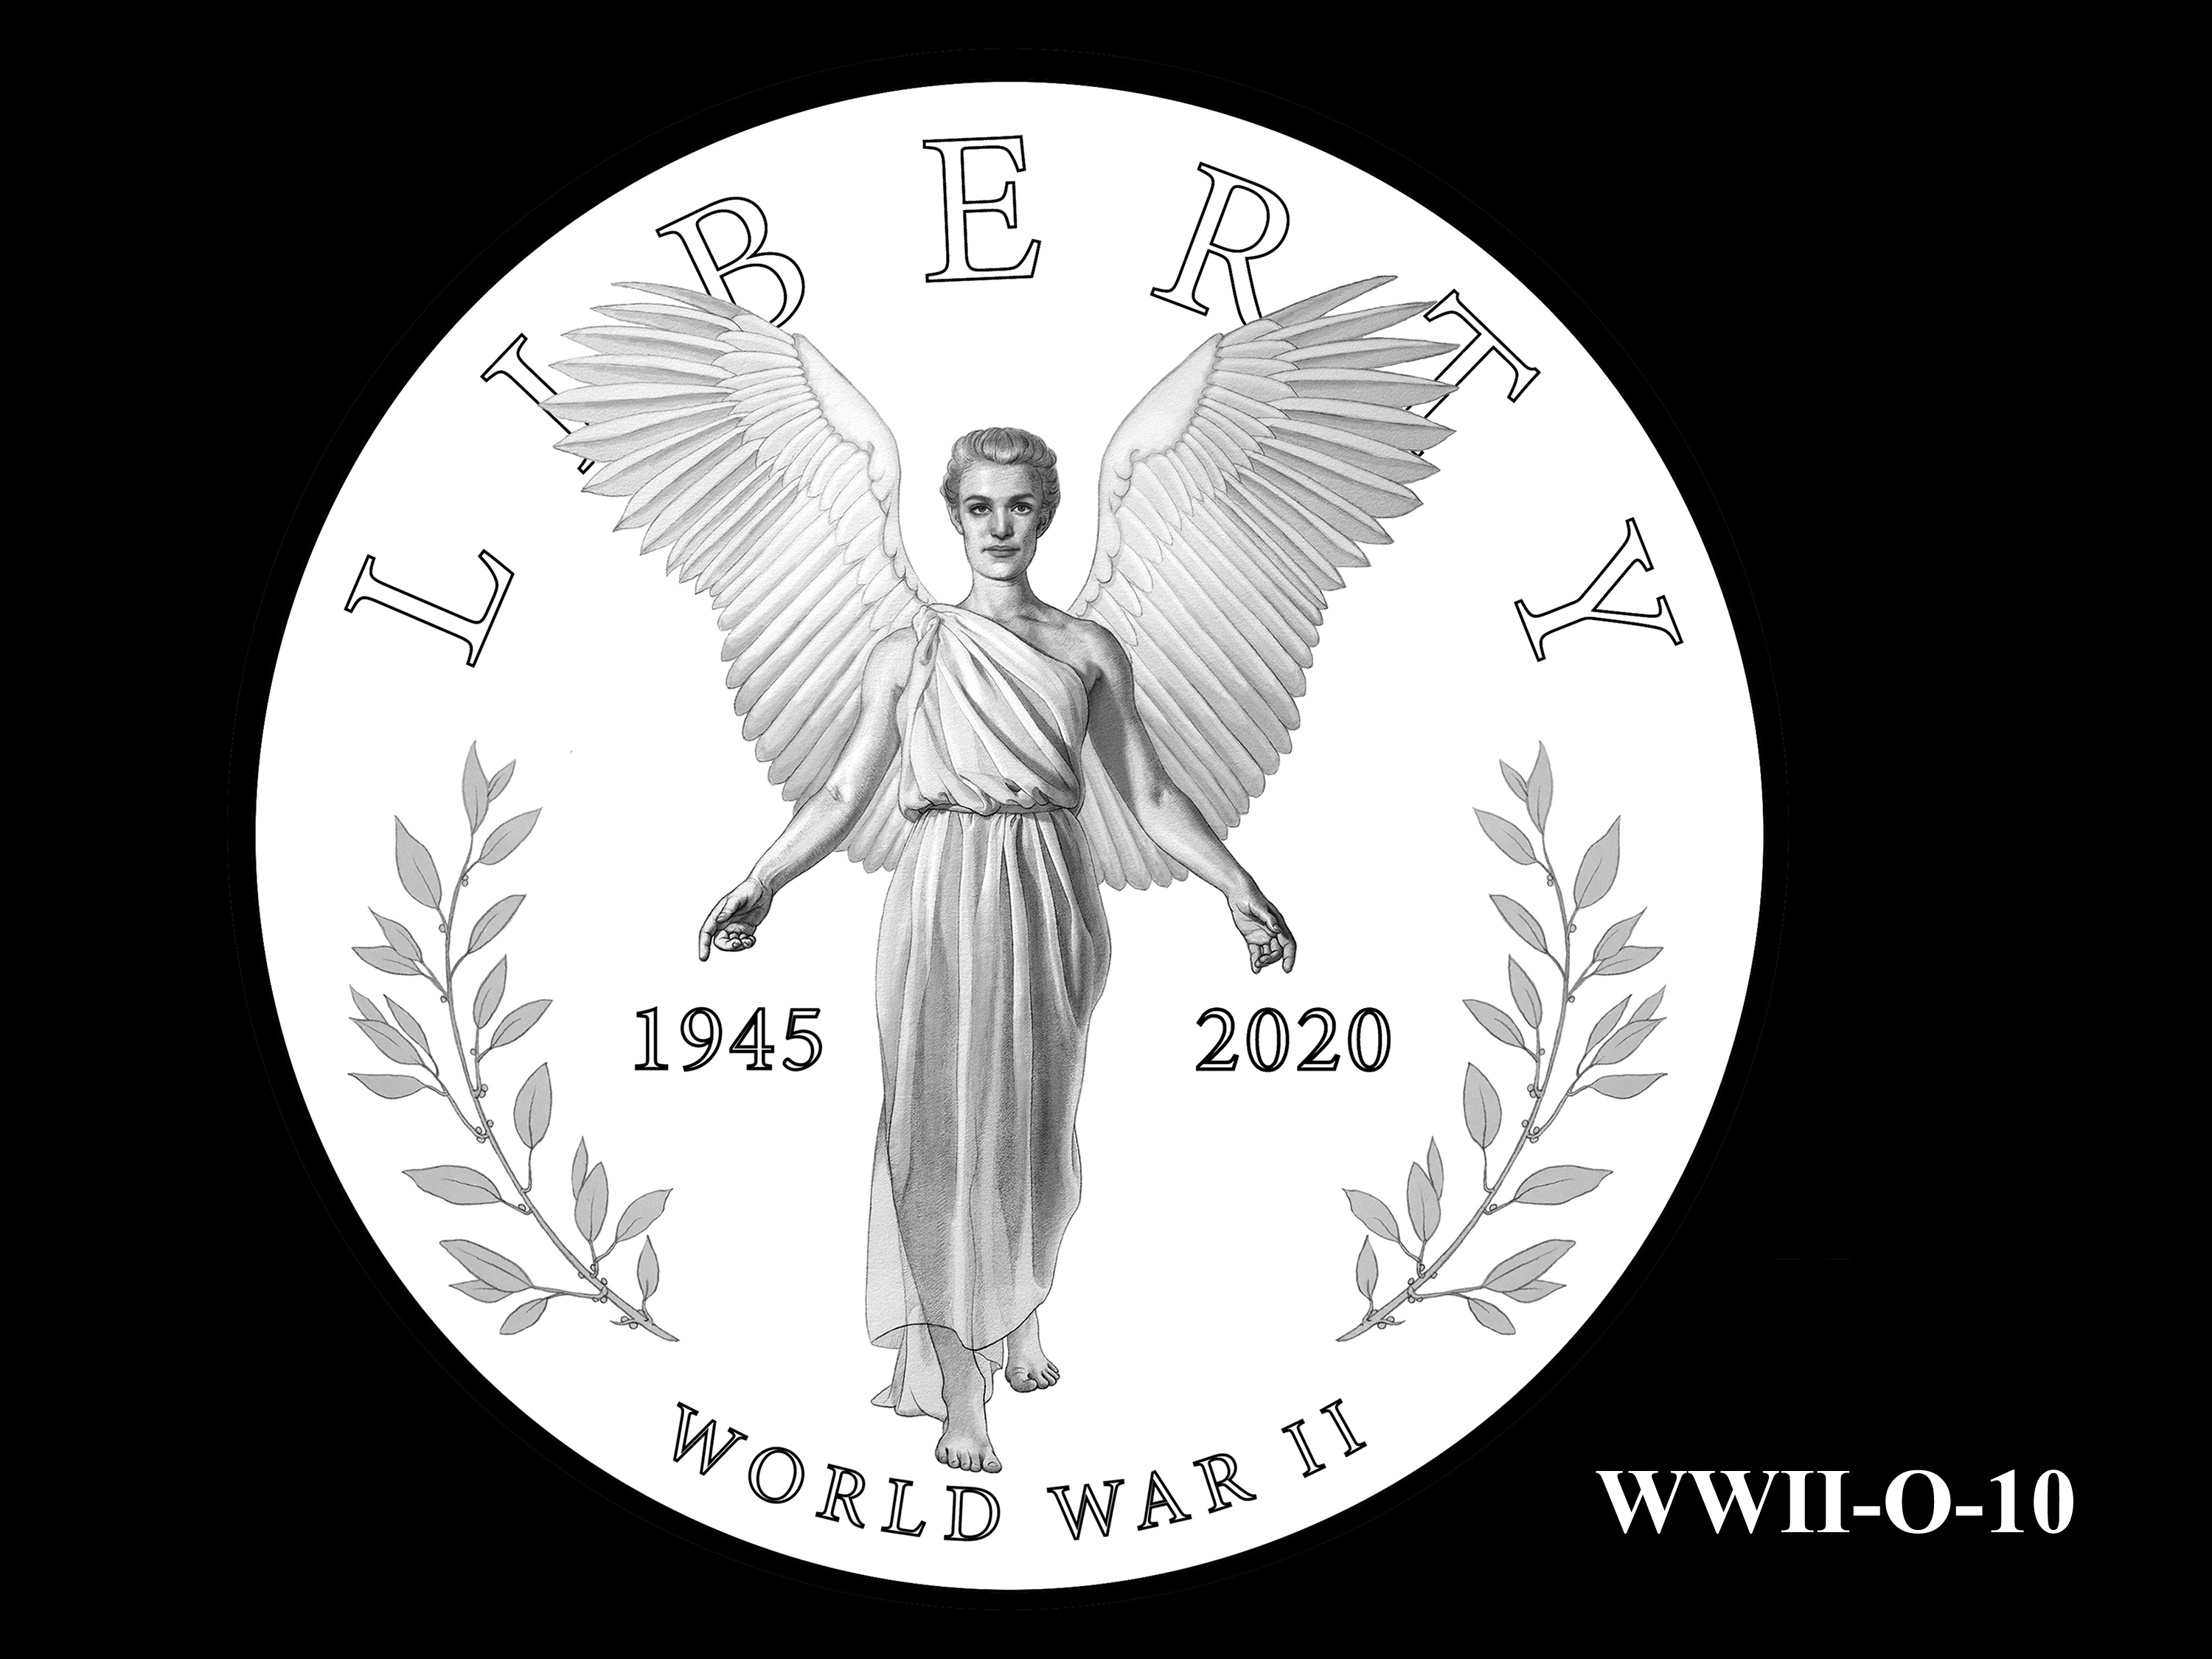 WWII-O-10 --End of World War II 75th Anniversary Program - Obverse